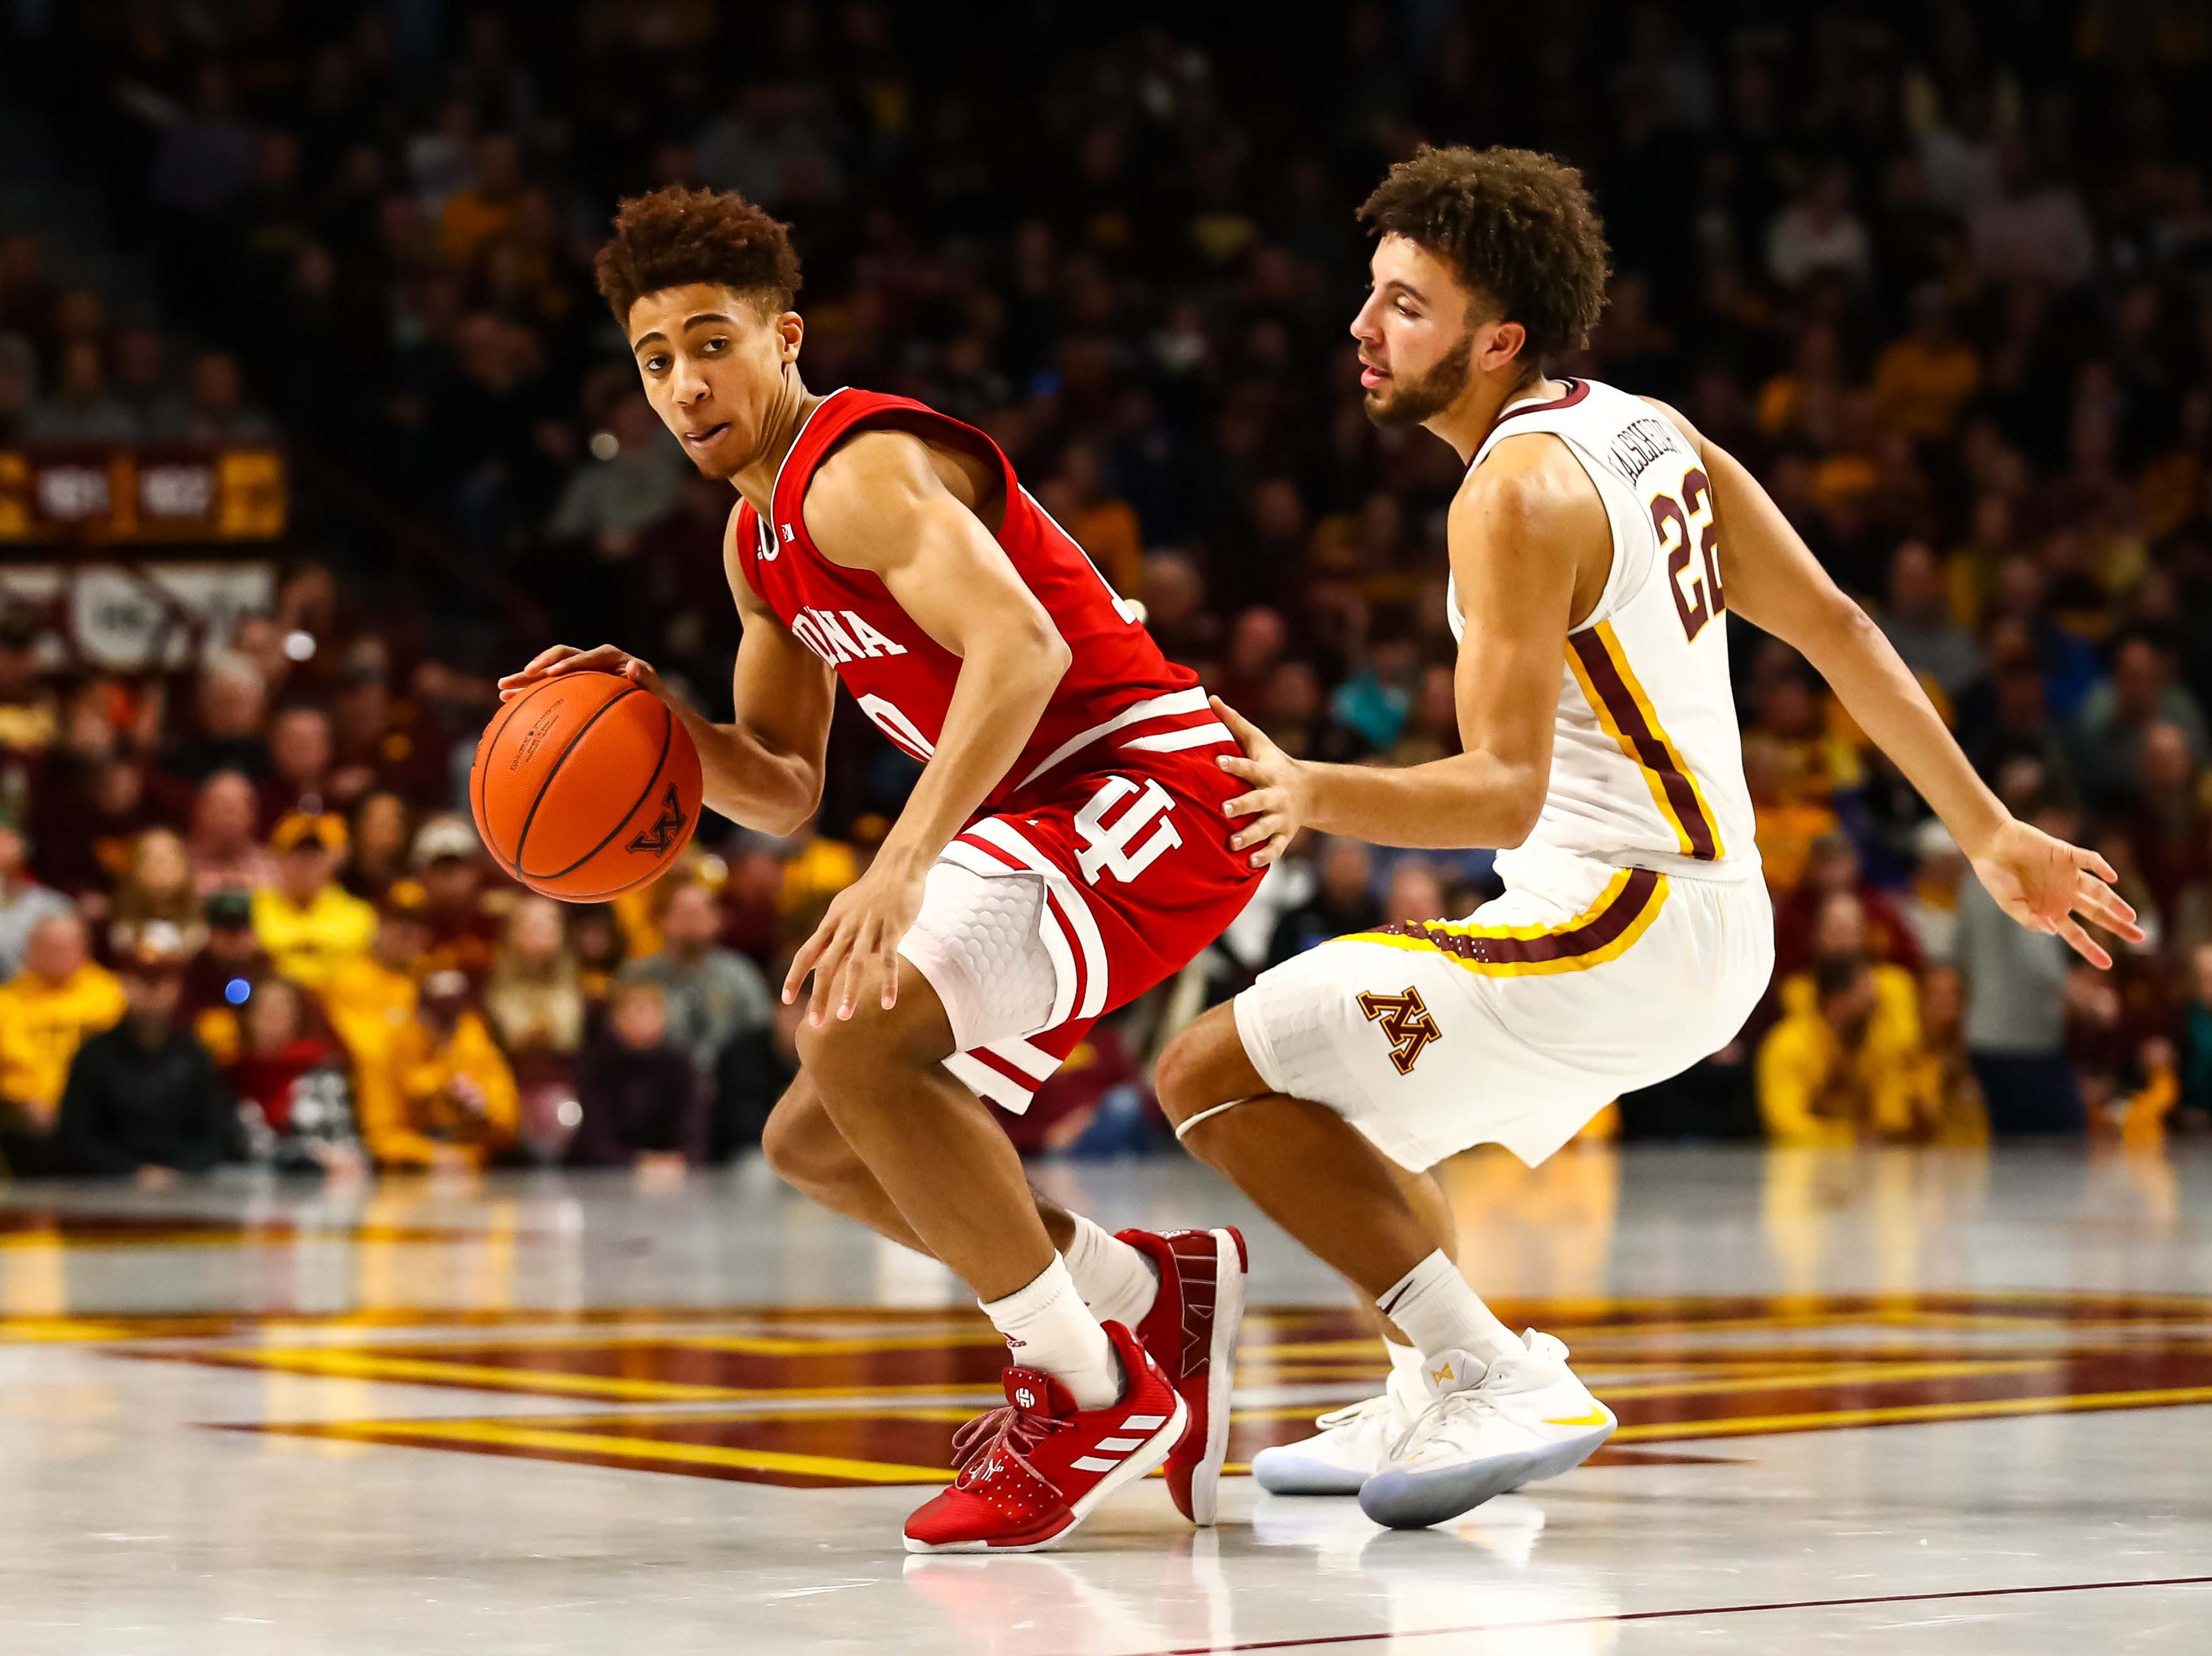 Feb 16, 2019; Minneapolis, MN, USA; Indiana Hoosiers guard Rob Phinisee (10) dribbles the ball while Minnesota Golden Gophers guard Gabe Kalscheur (22) defends in the second half at Williams Arena. The Minnesota Golden Gophers defeatd the Indiana Hoosiers 84-63. Mandatory Credit: David Berding-USA TODAY Sports